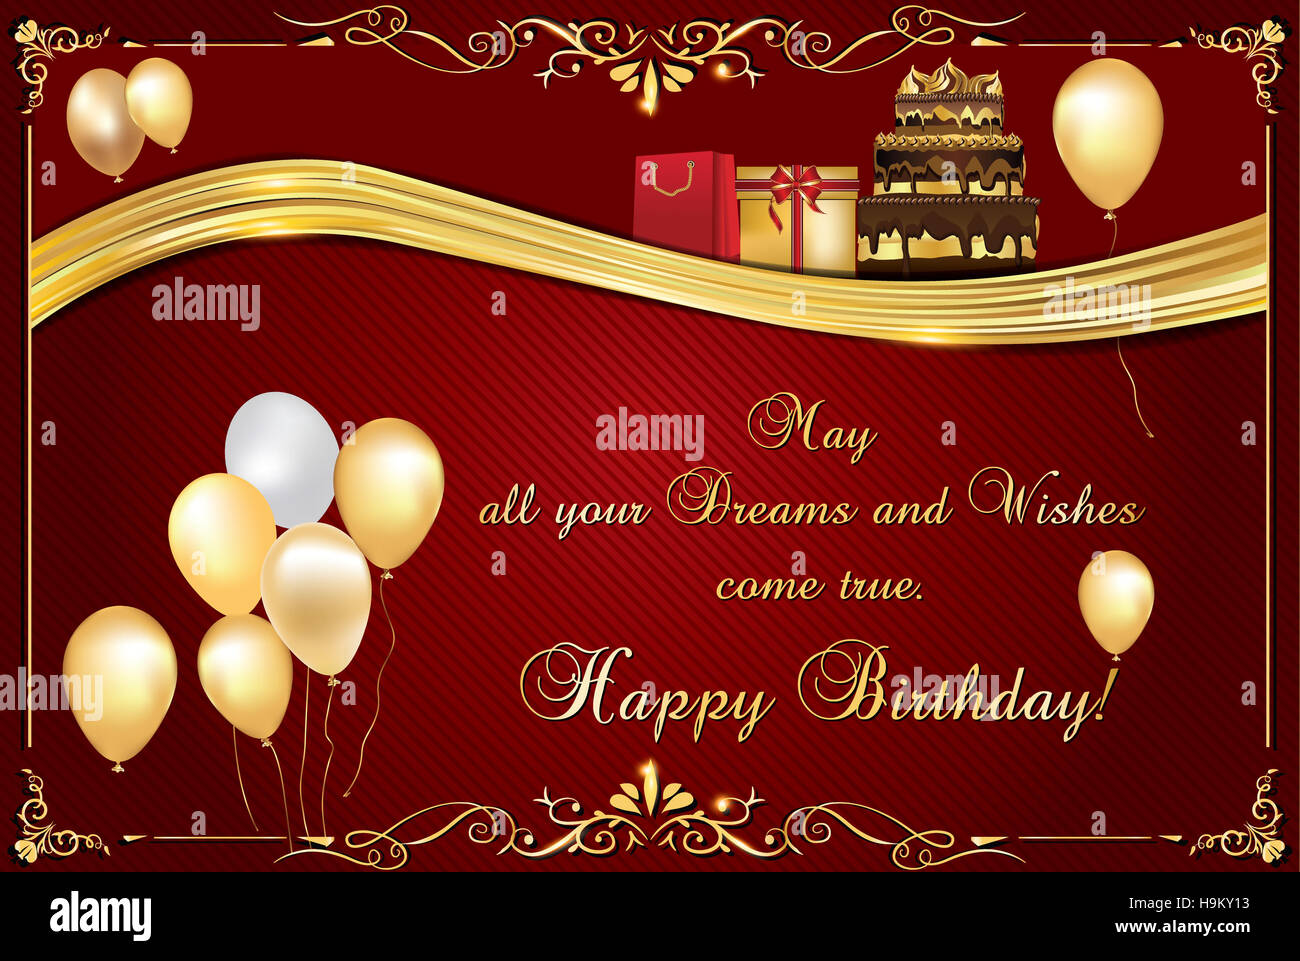 Elegant Birthday Card Also For Print Happy Greeting Contains Balloons Cake And Presents